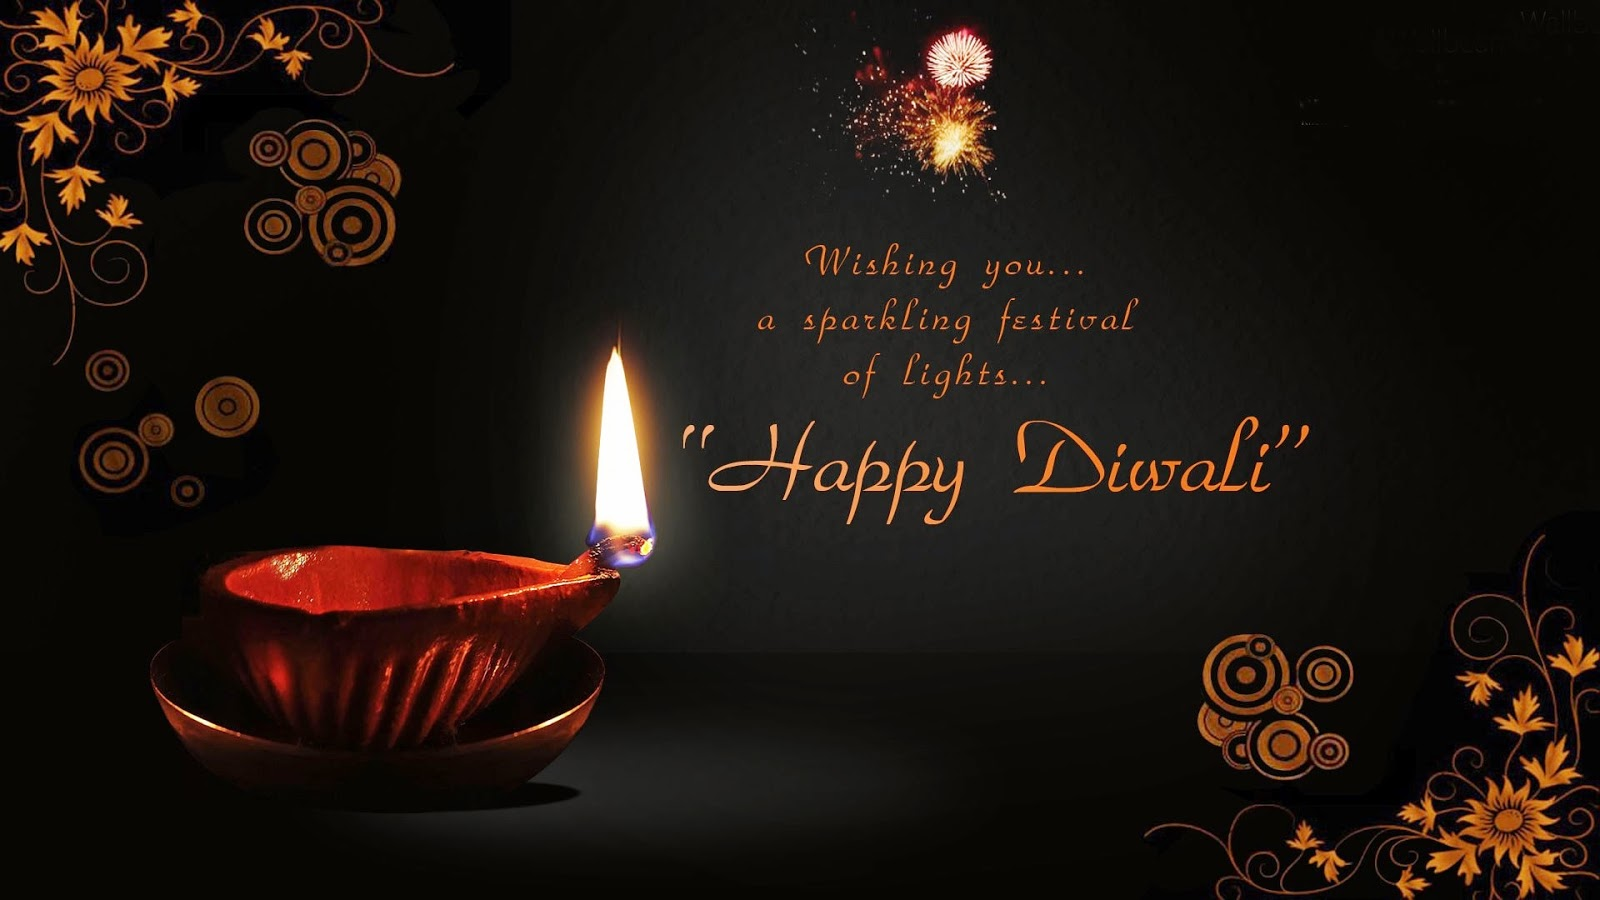 Happy Diwali wallpaper full HD